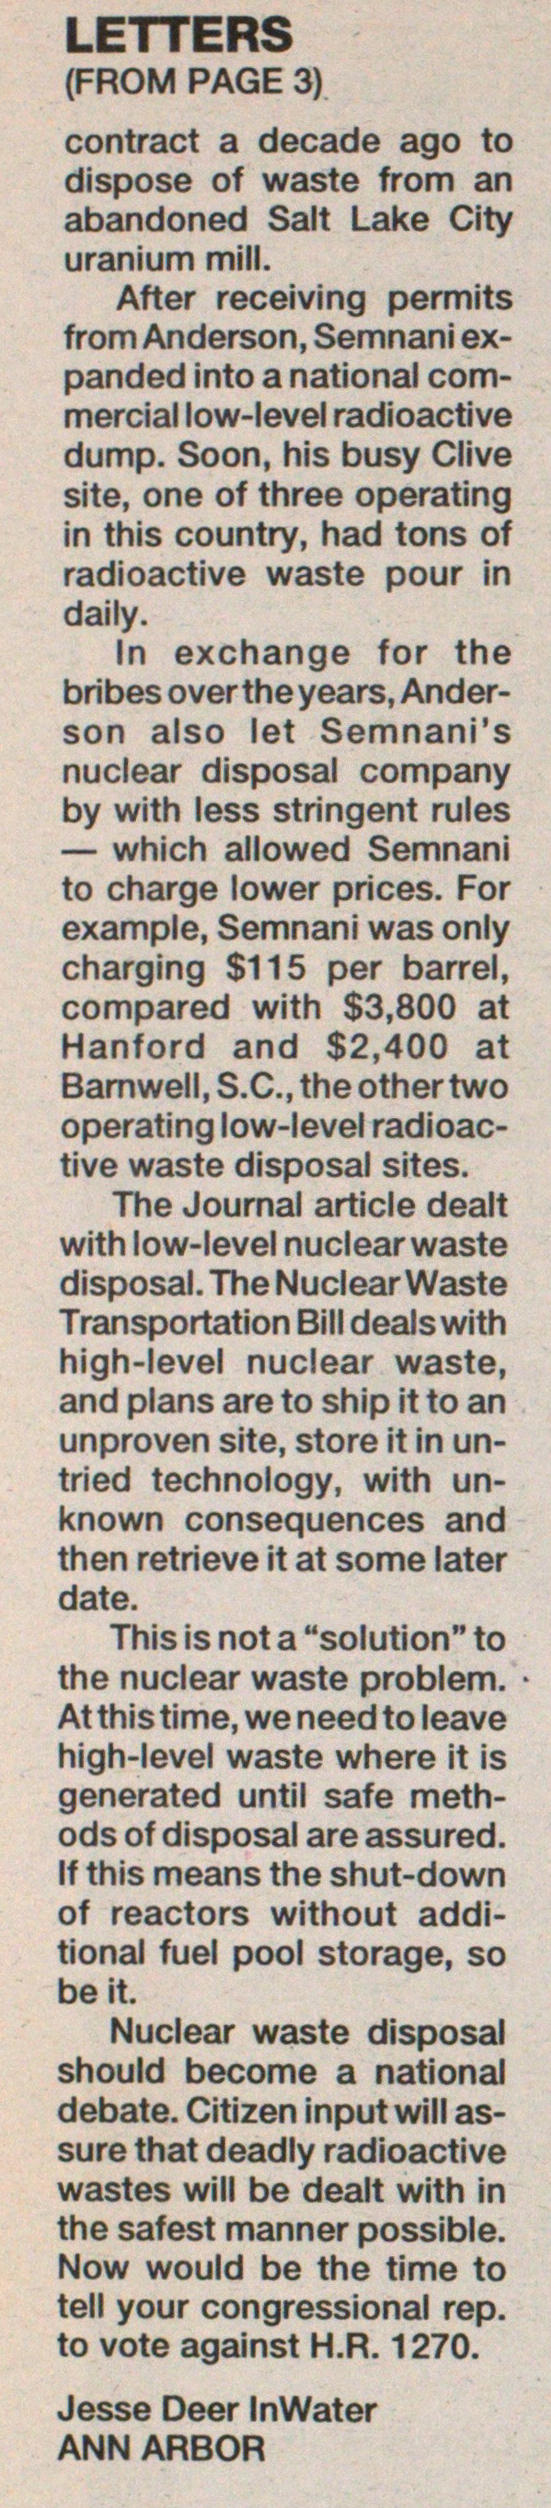 Nuclear Waste Legislation Opposed image